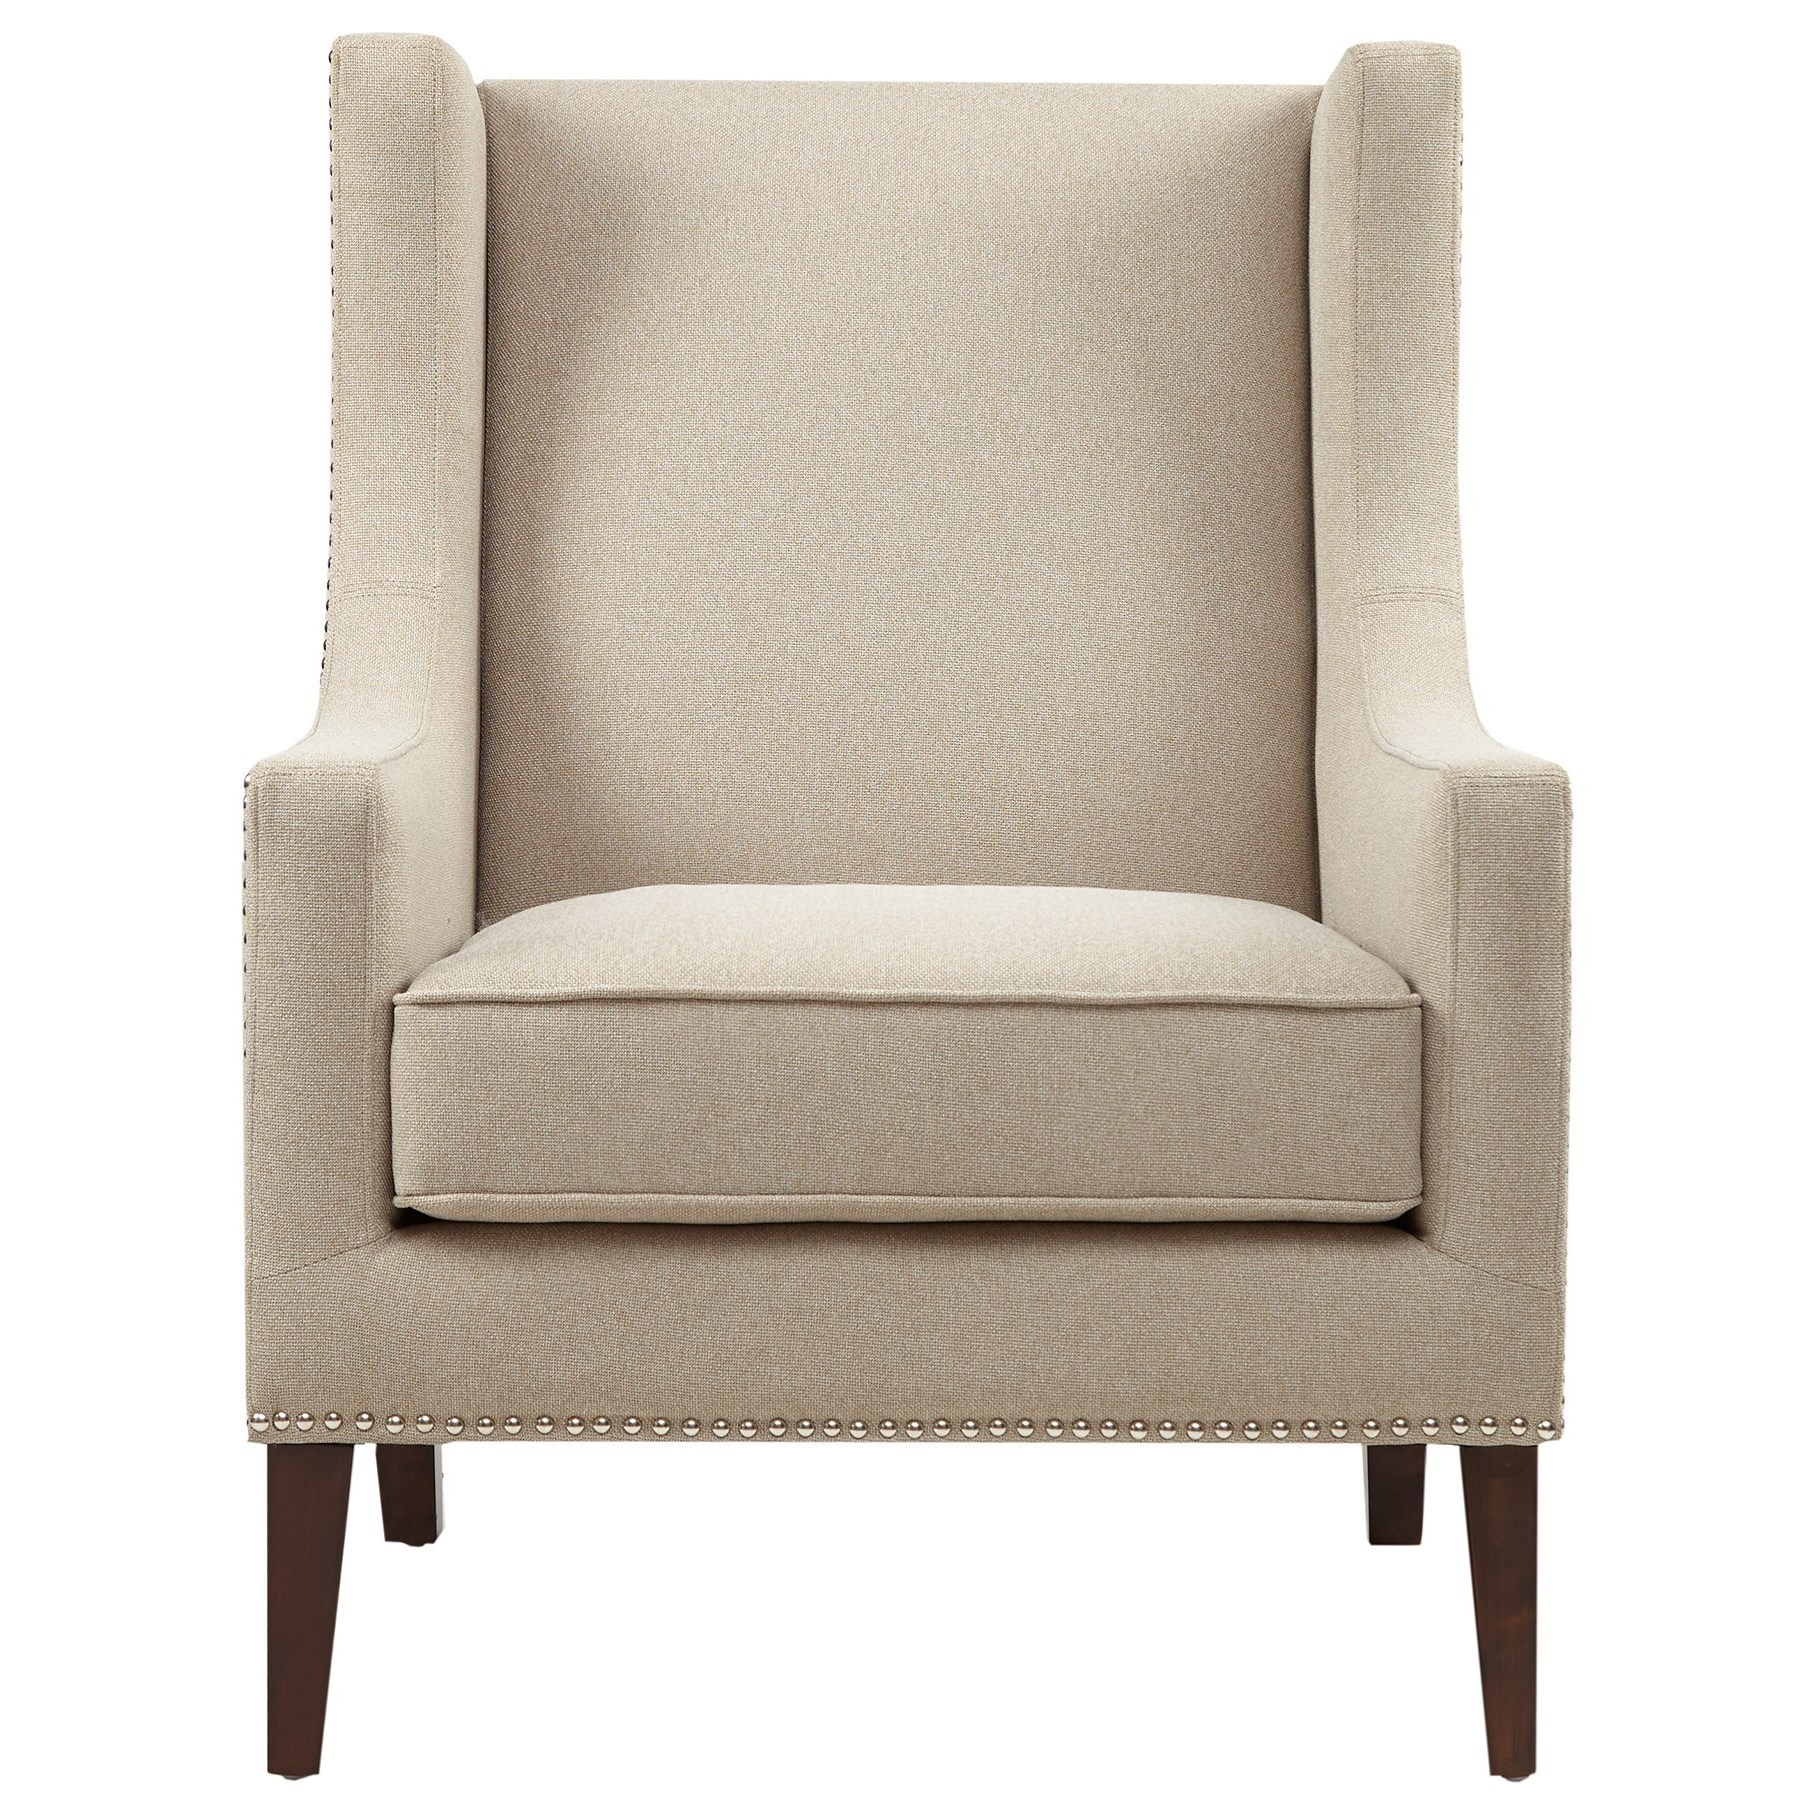 Barton Chair Jla Home Barton Mp100 0120 Wing Back Chair With Nailhead